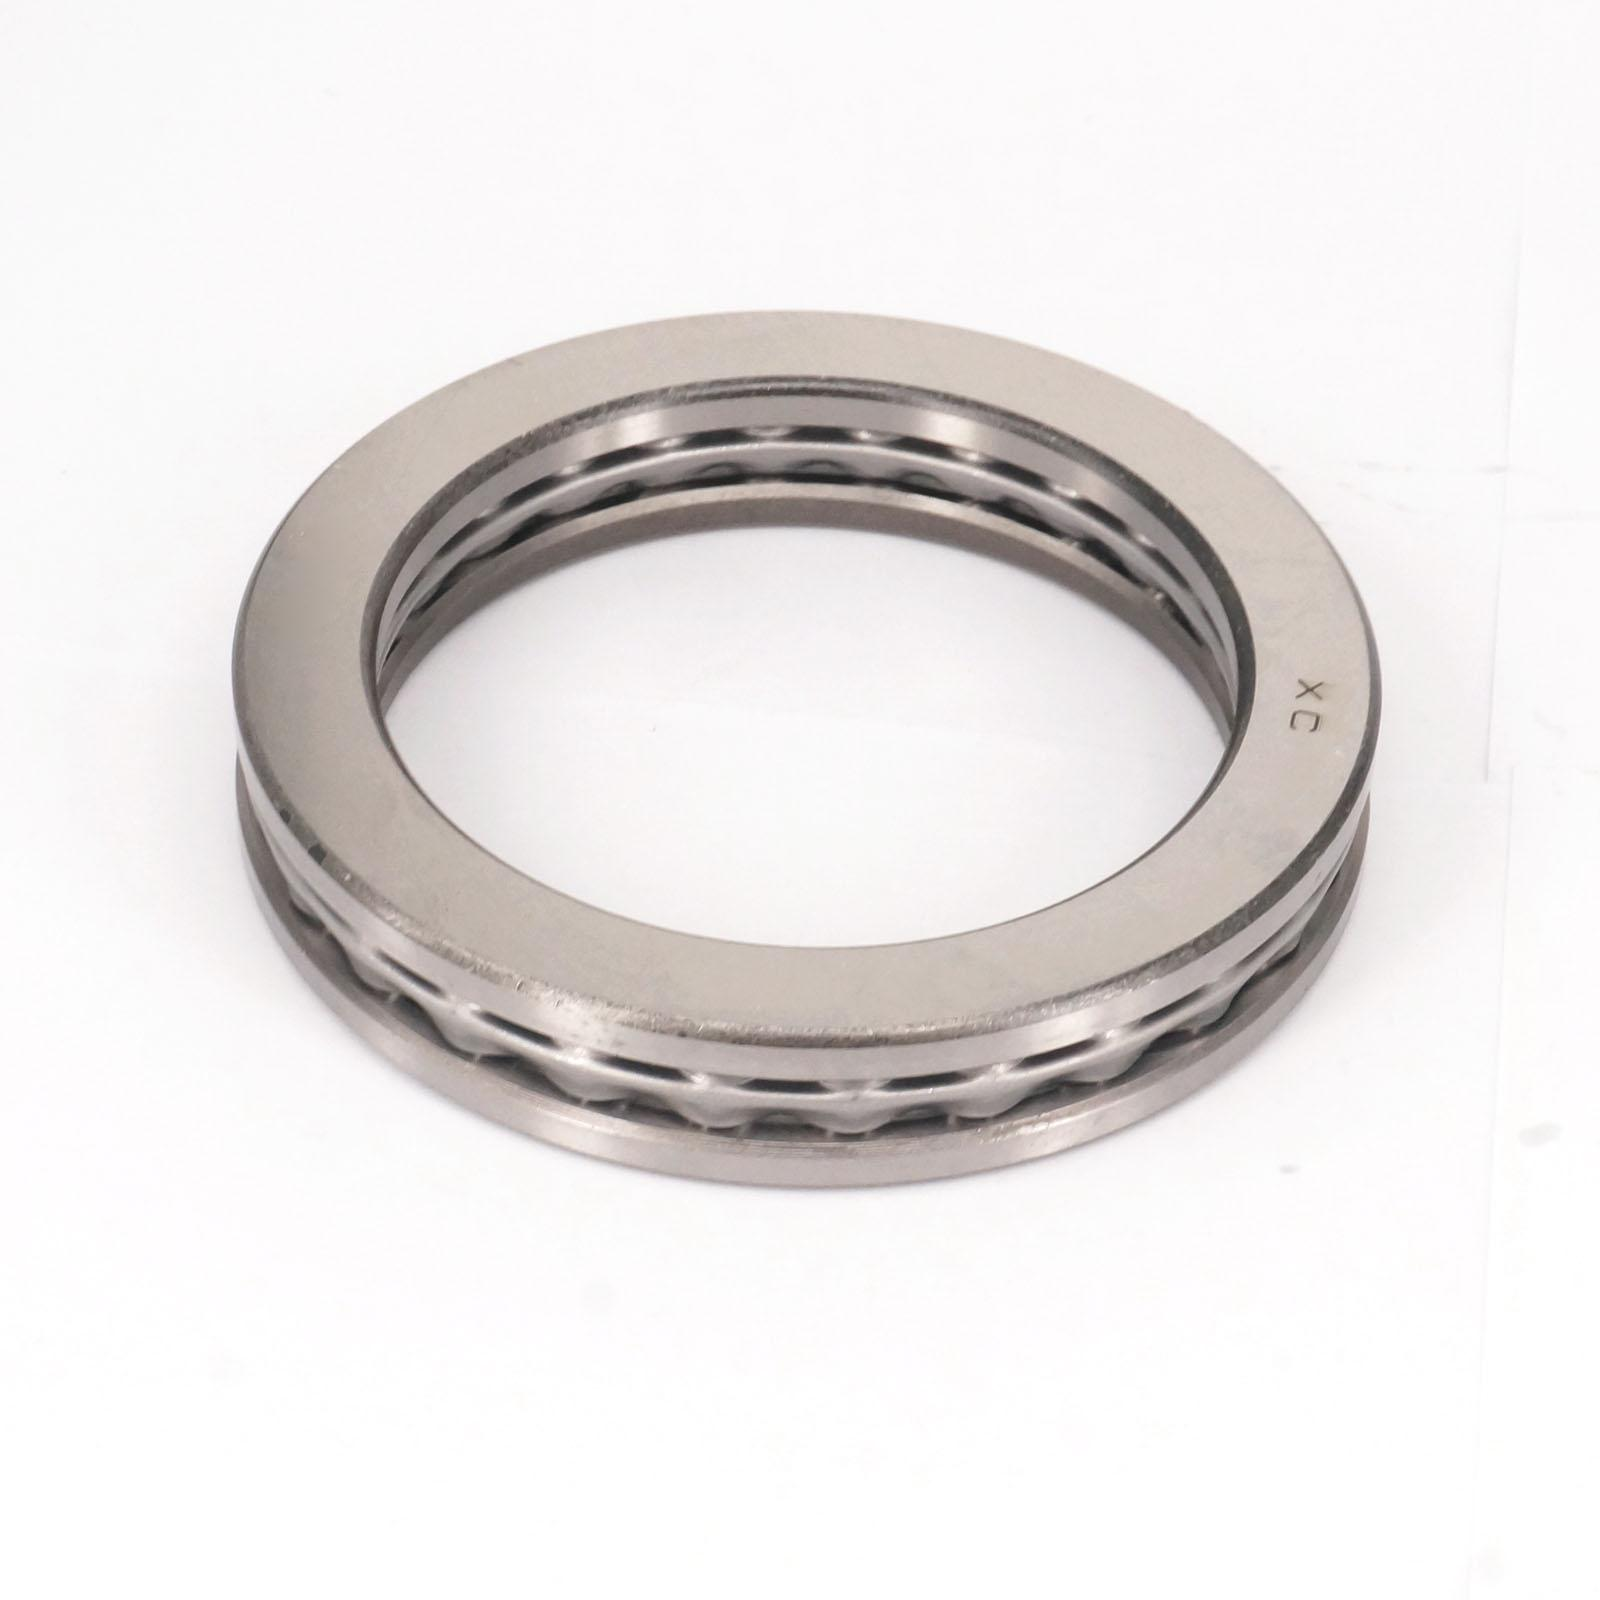 51124 120x155x25mm Axial Ball Thrust Bearing Set(2 Steel Races + 1 Cage)AEBC-1